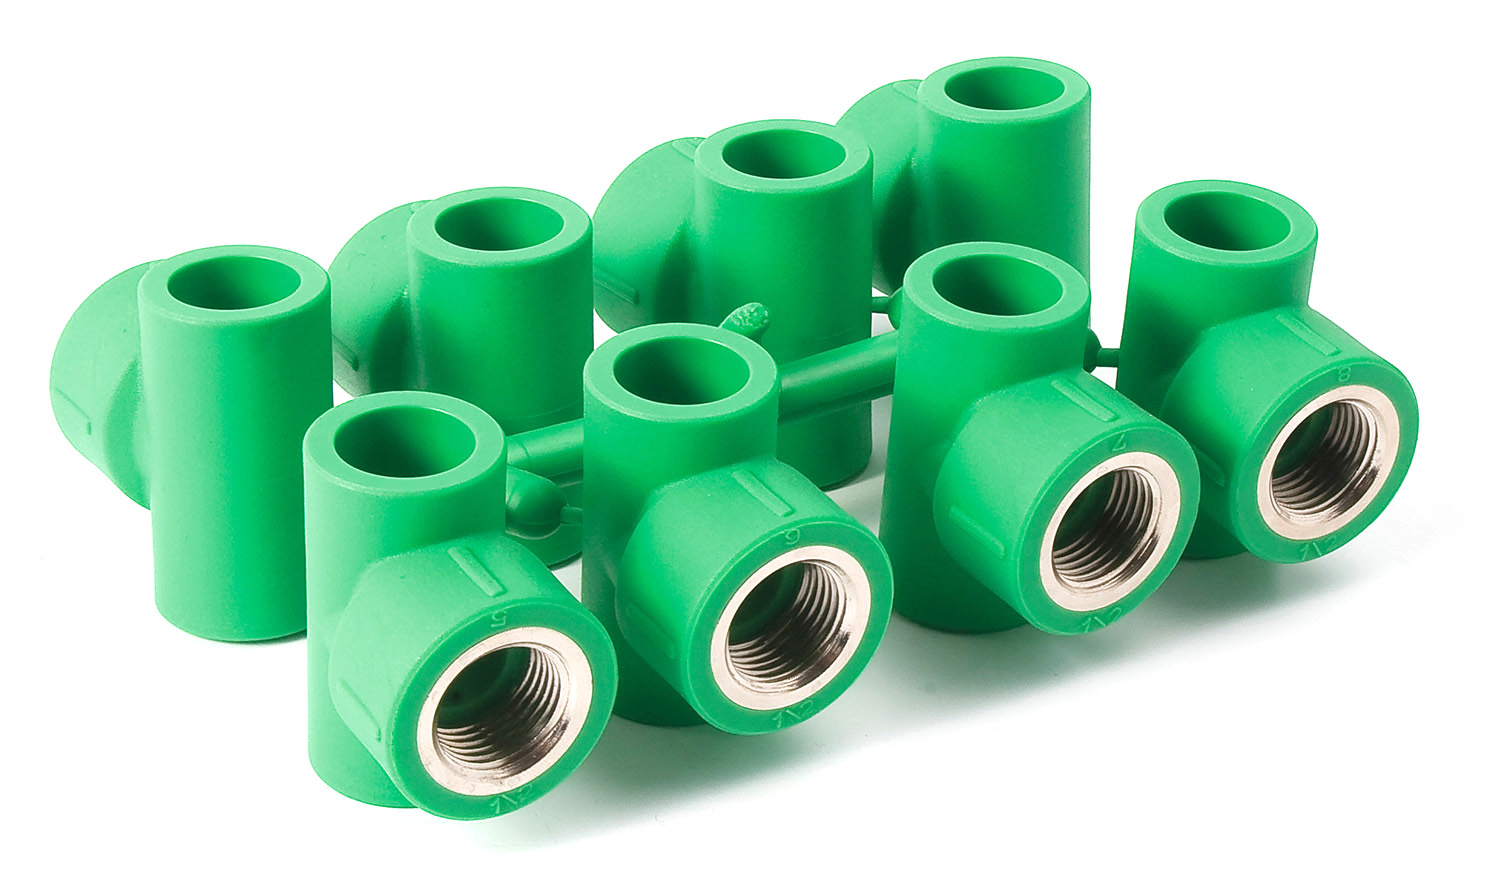 PPR-C  PPR-C Sanitary Fittings Moulds